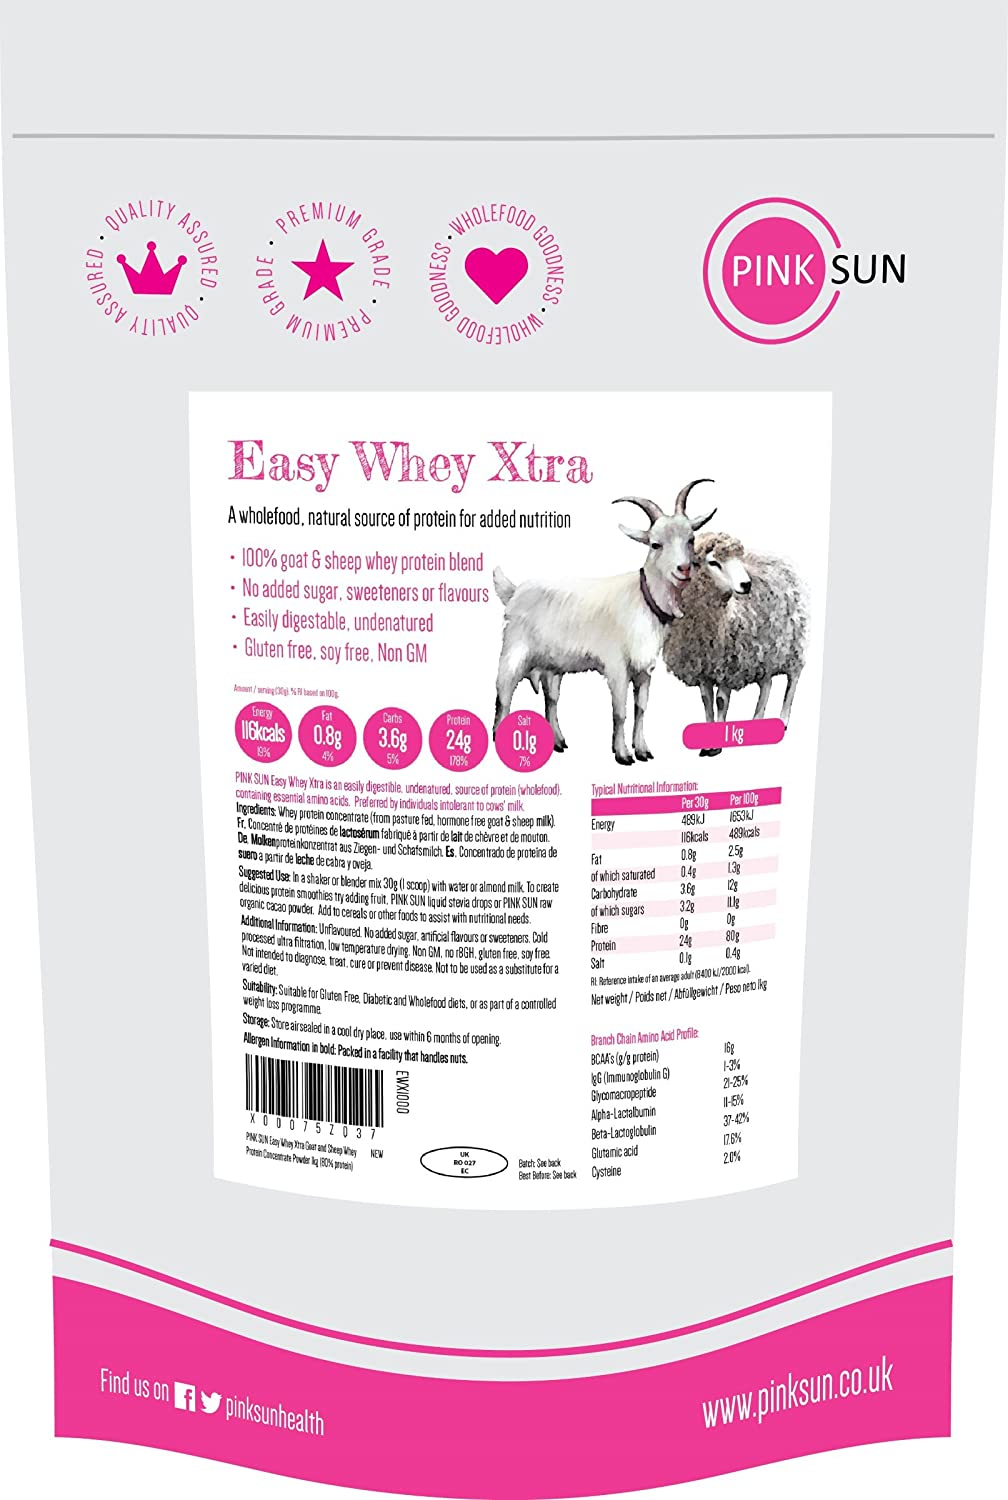 PINK SUN Proteína de Suero de Cabra y Oveja 1kg - Easy Whey Xtra Goat and Sheep Whey Protein Concentrate Powder 1000g: Amazon.es: Salud y cuidado personal